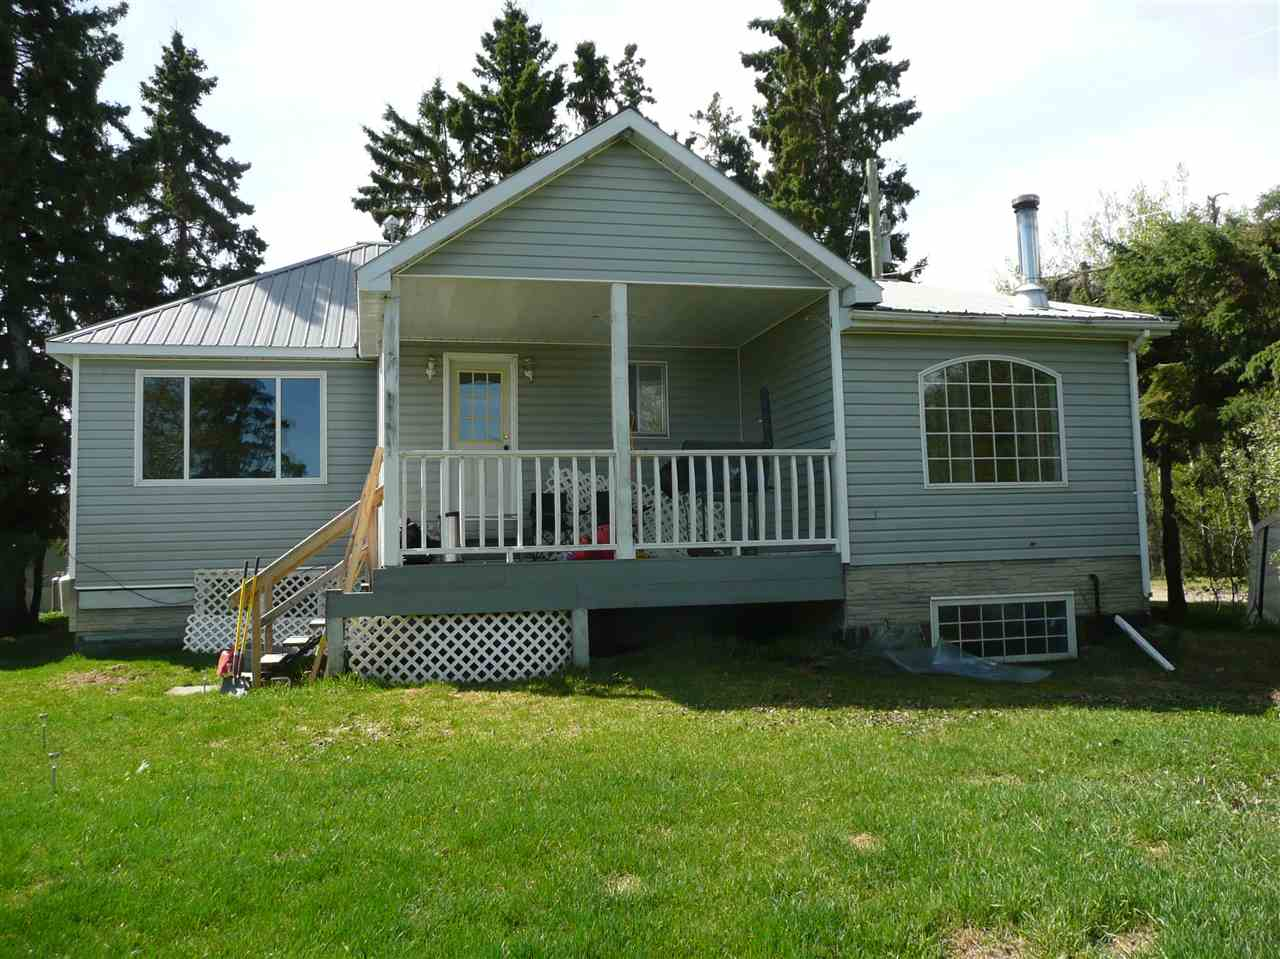 2165 TWP RD 490, 4 bed, 1 bath, at $549,000